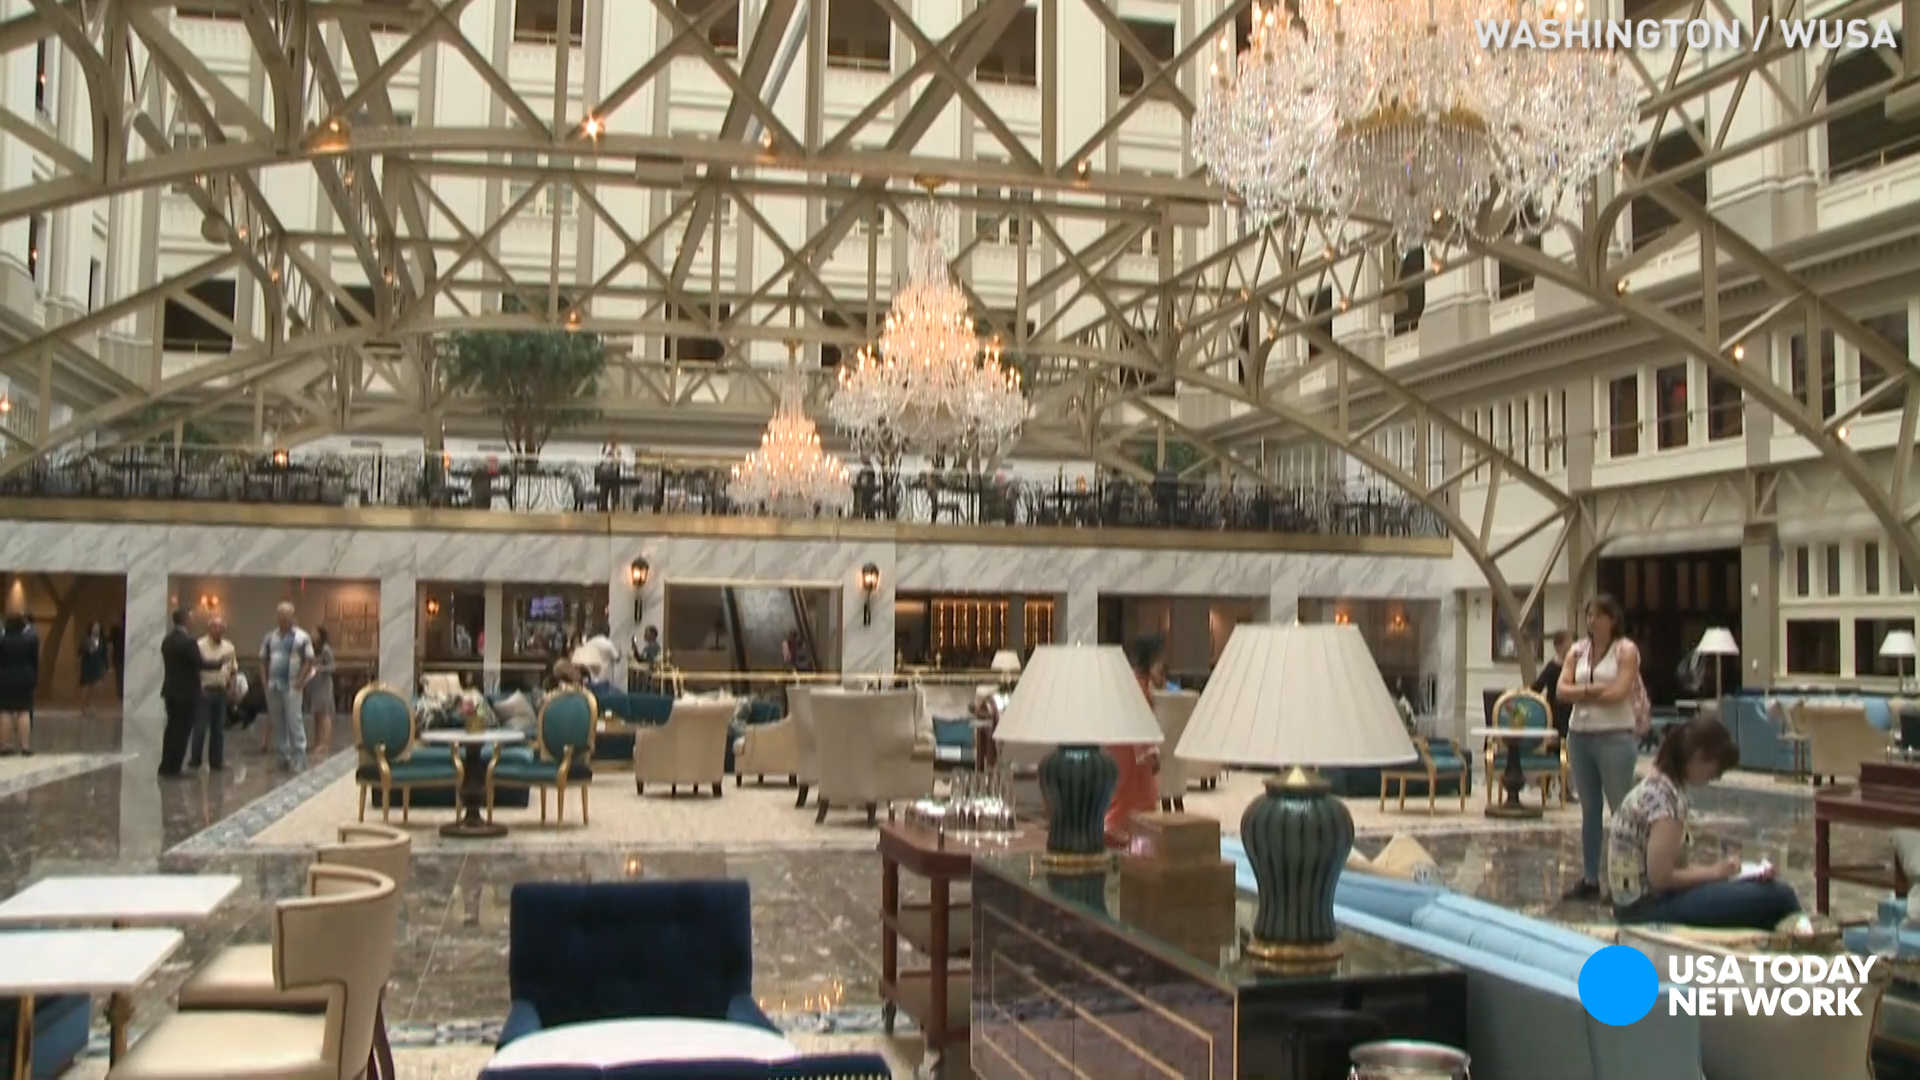 Trumps Home In Trump Tower See Inside Donald Trump S New D C Hotel